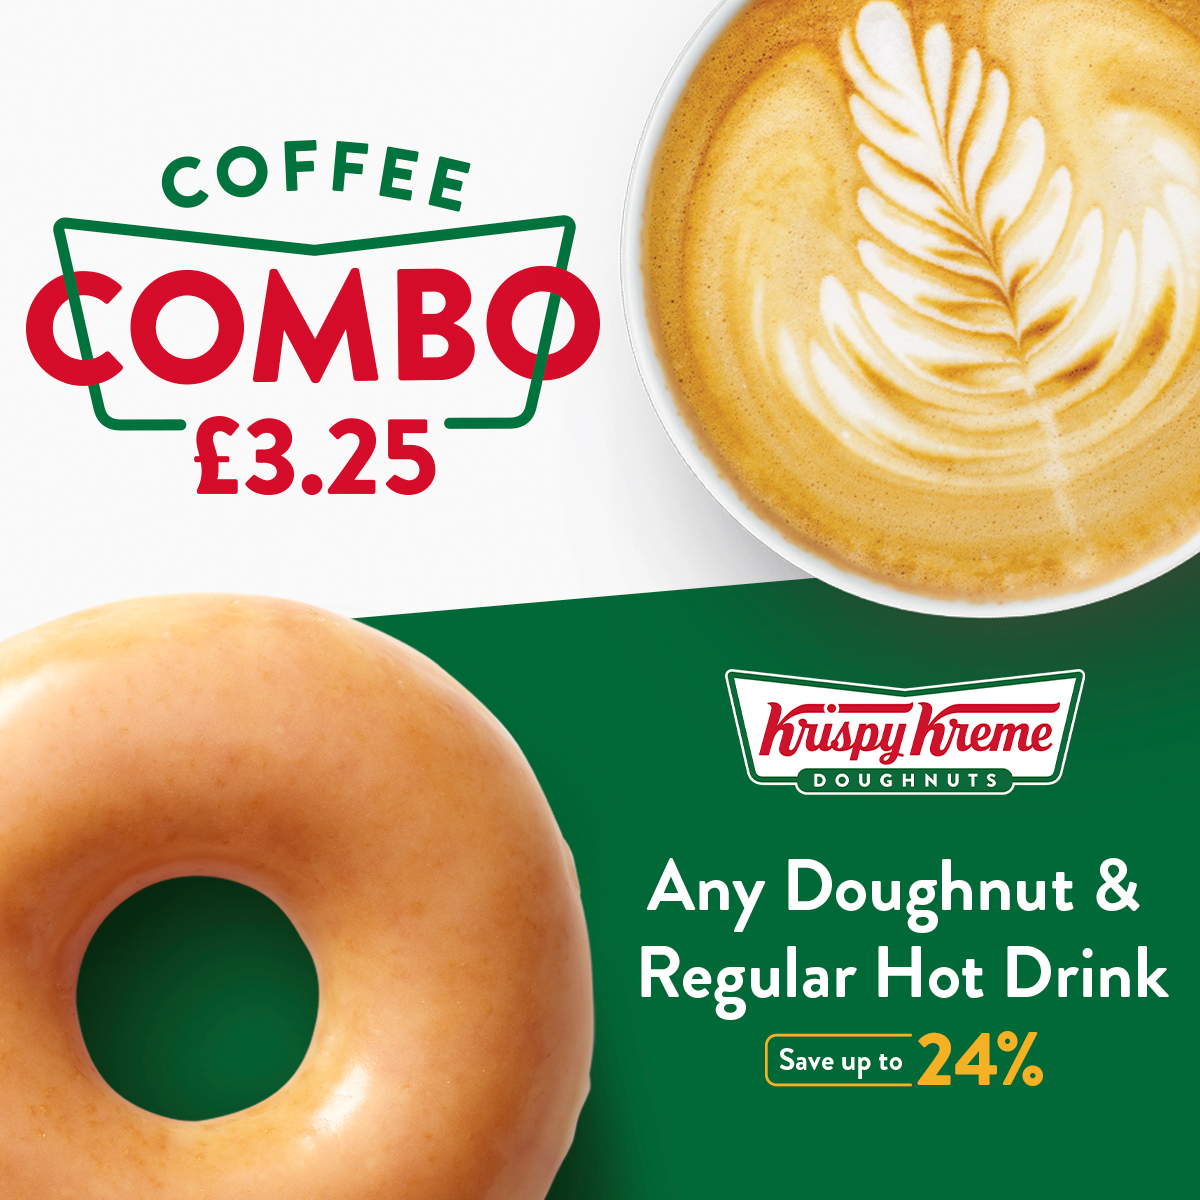 an image of coffee and doughnut with the text coffee combo £3.25.